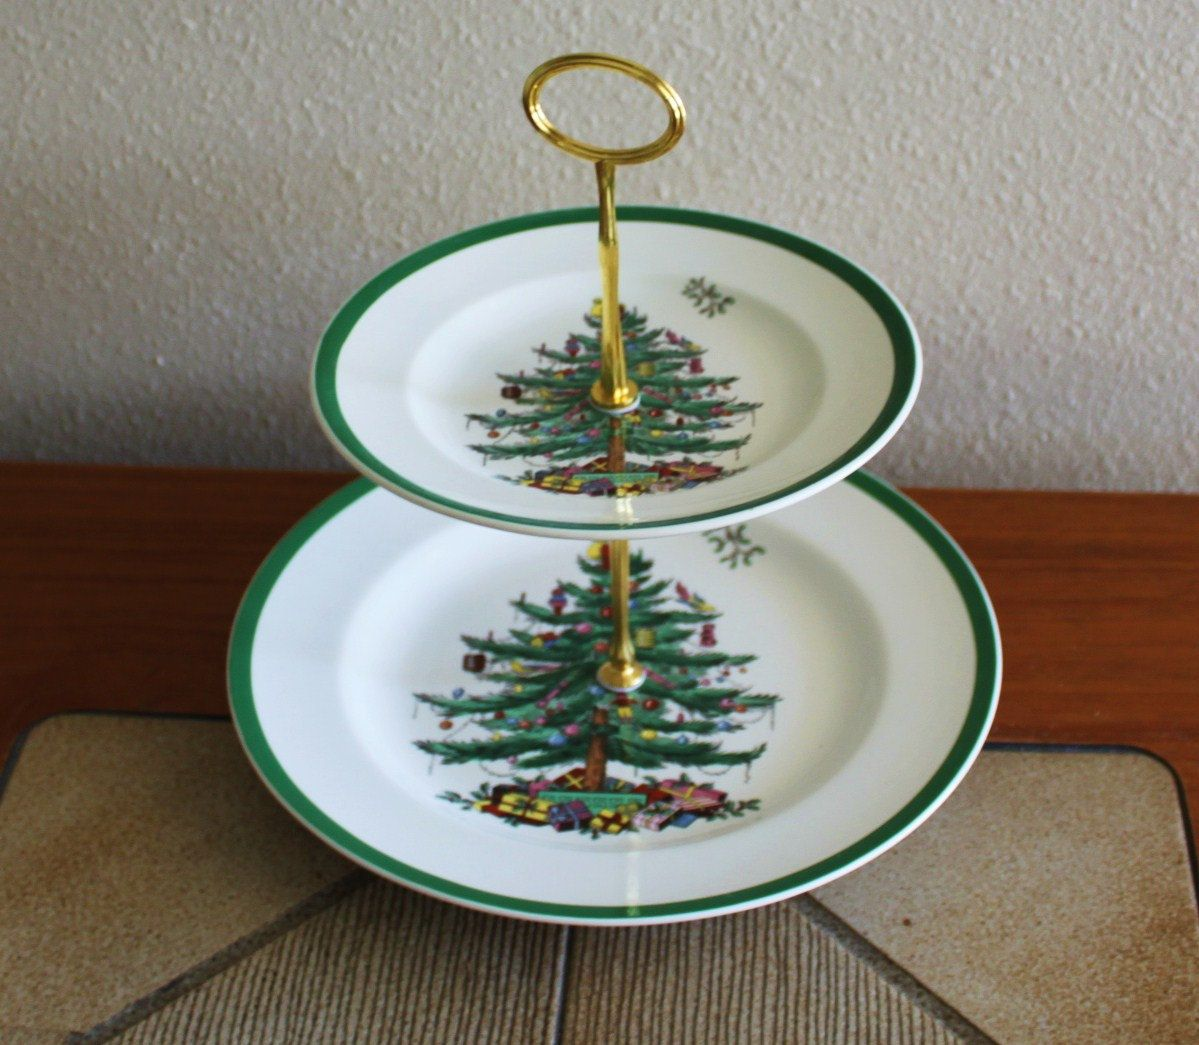 2 Tier Cake Cupcake Spode Christmas Tree Plate Stand Tidbit Tea Party Display Server Elegant Events 27 0 Spode Christmas Spode Christmas Tree Christmas China